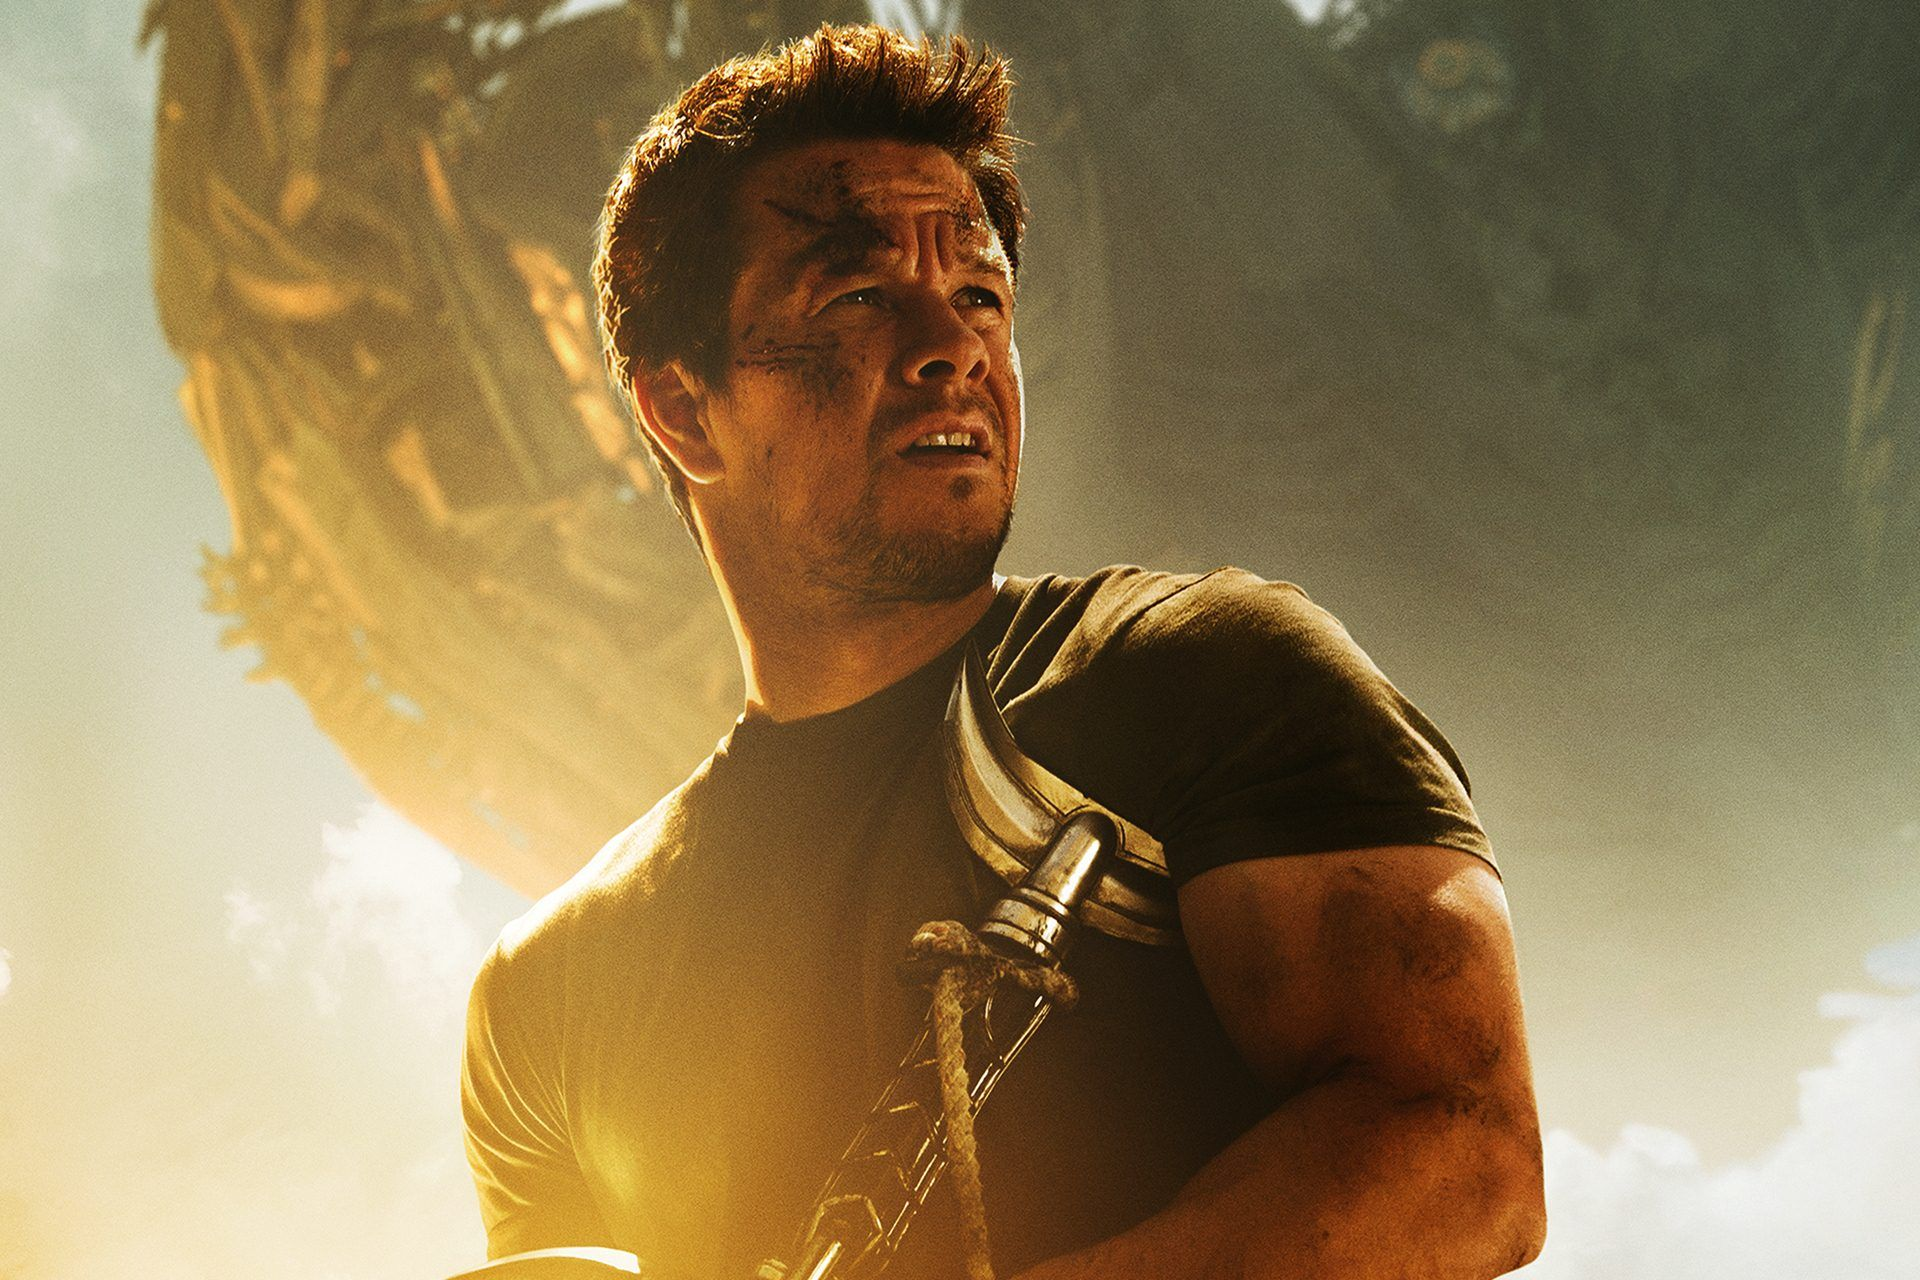 Is Mark Wahlberg the New 'Six Million Dollar Man'?